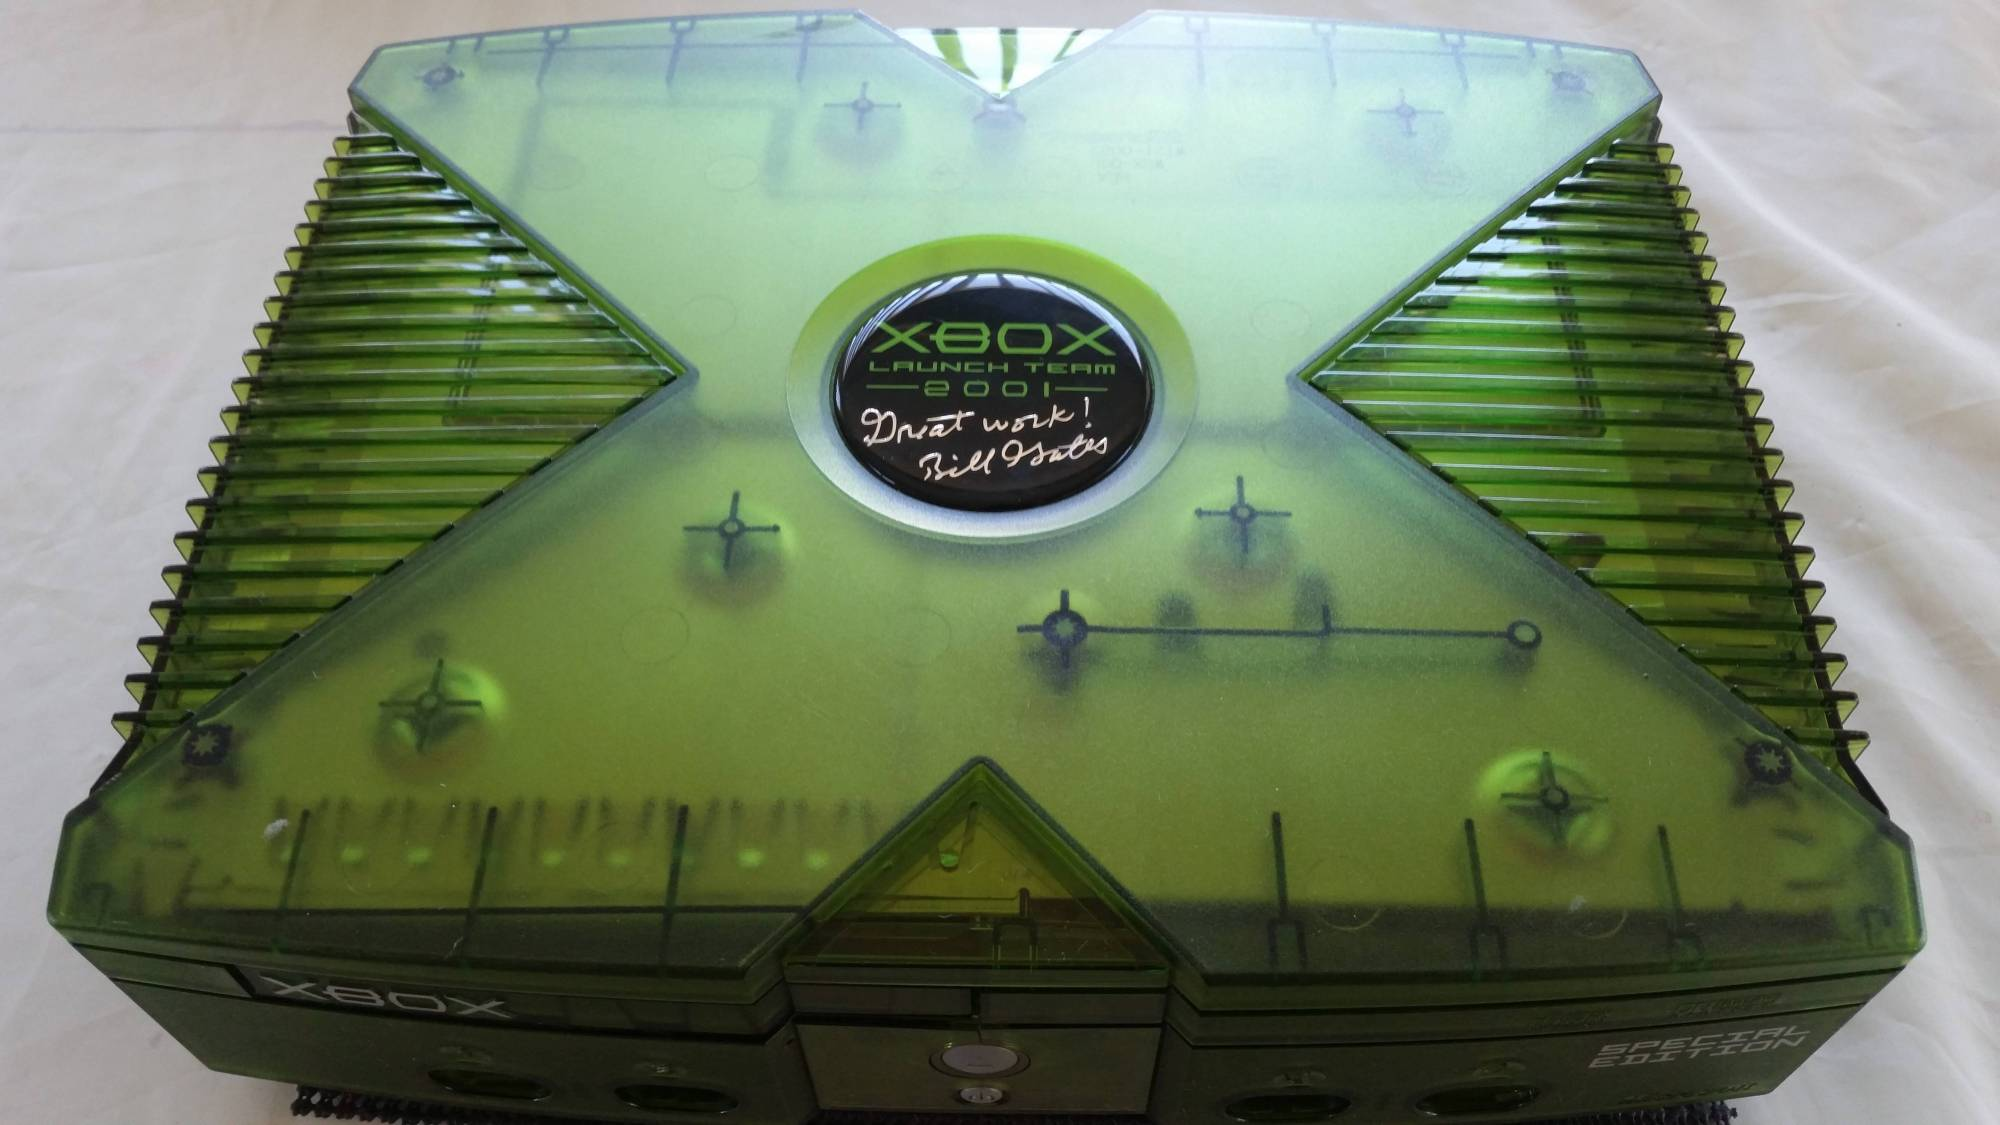 hight resolution of microsoft xbox 2001 launch team edition overhead view jpg